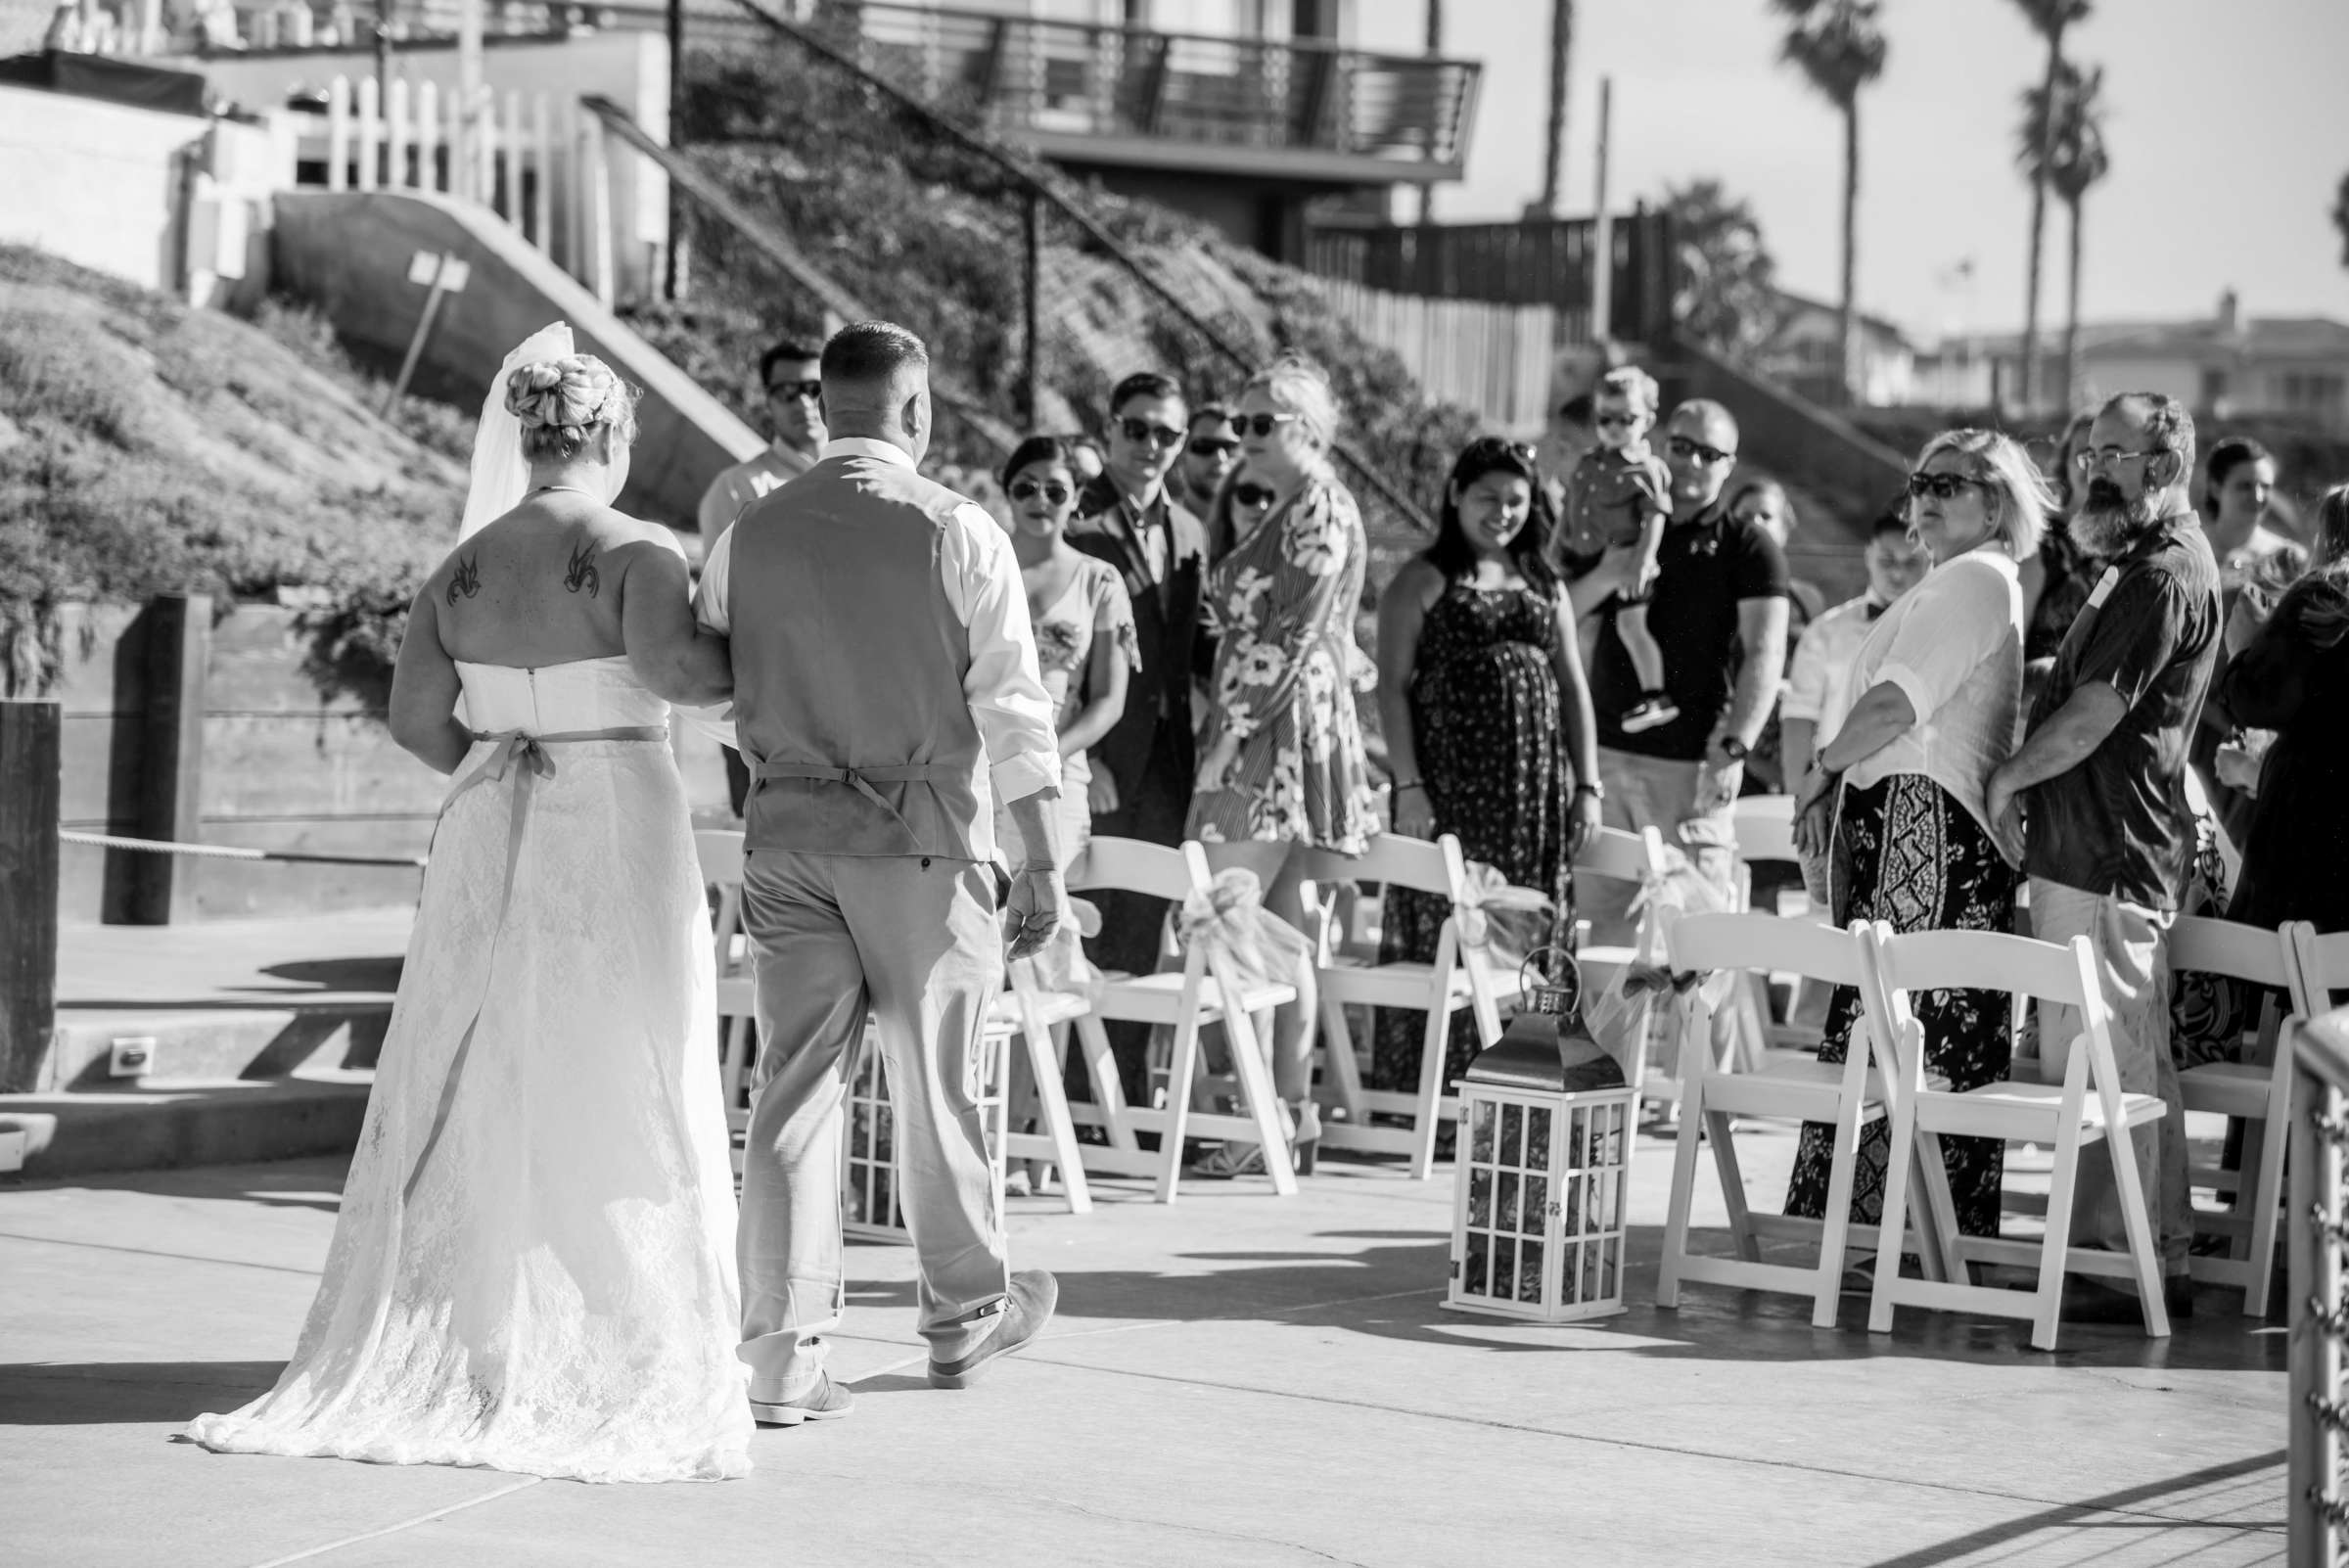 The Inn at Sunset Cliffs Wedding, Melinda and Benjamin Wedding Photo #51 by True Photography